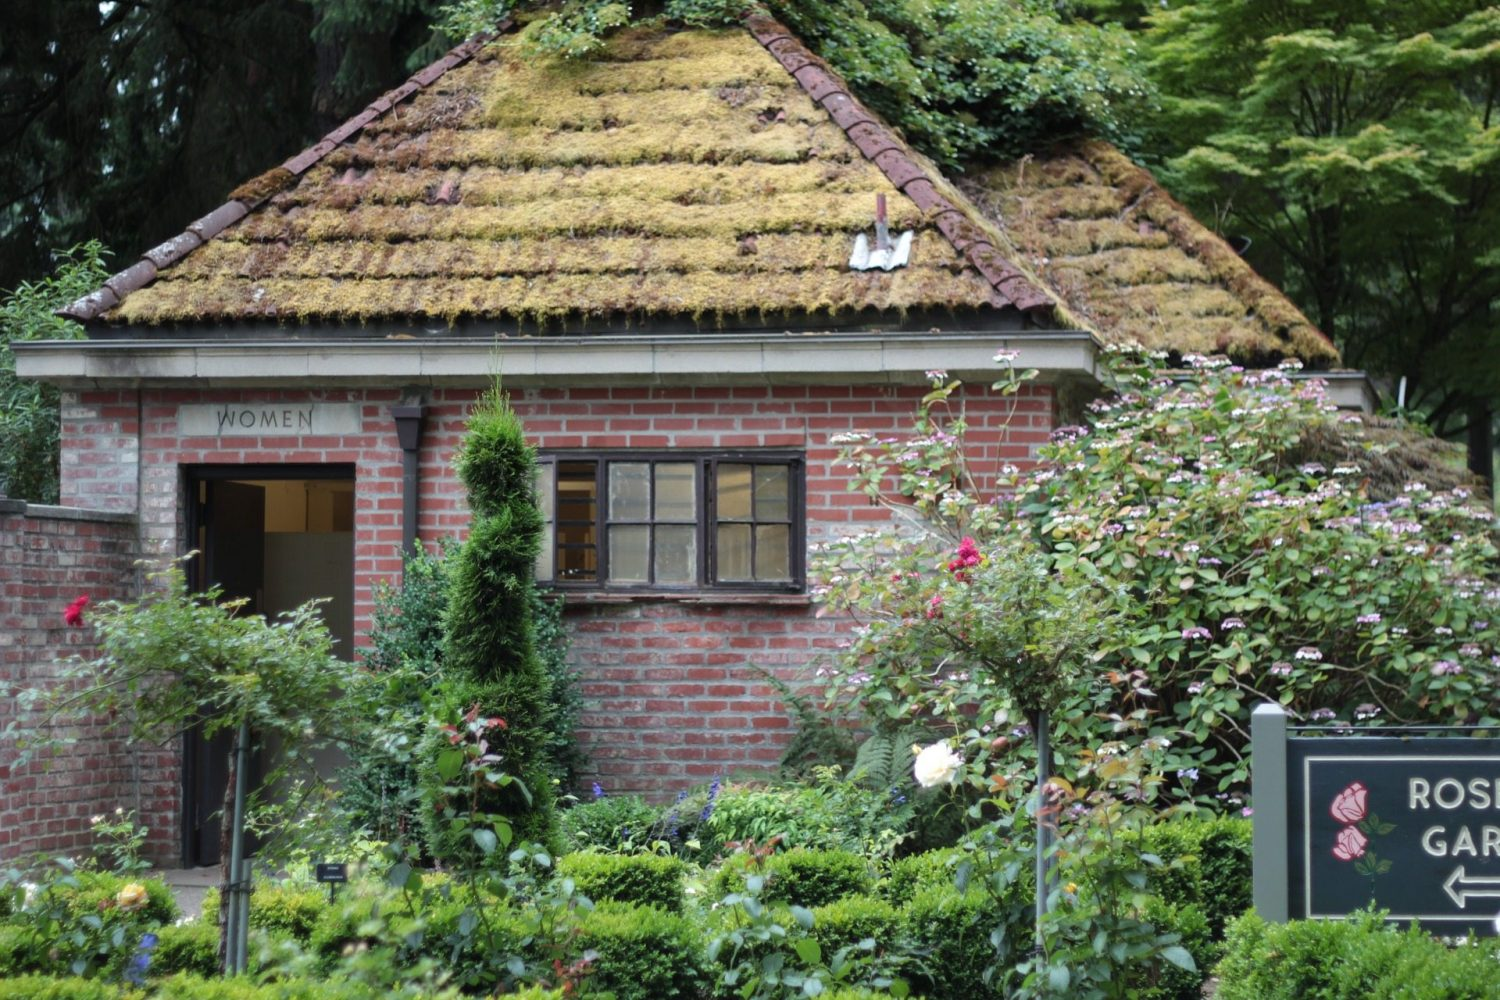 red brick bathroom building with moss on roof